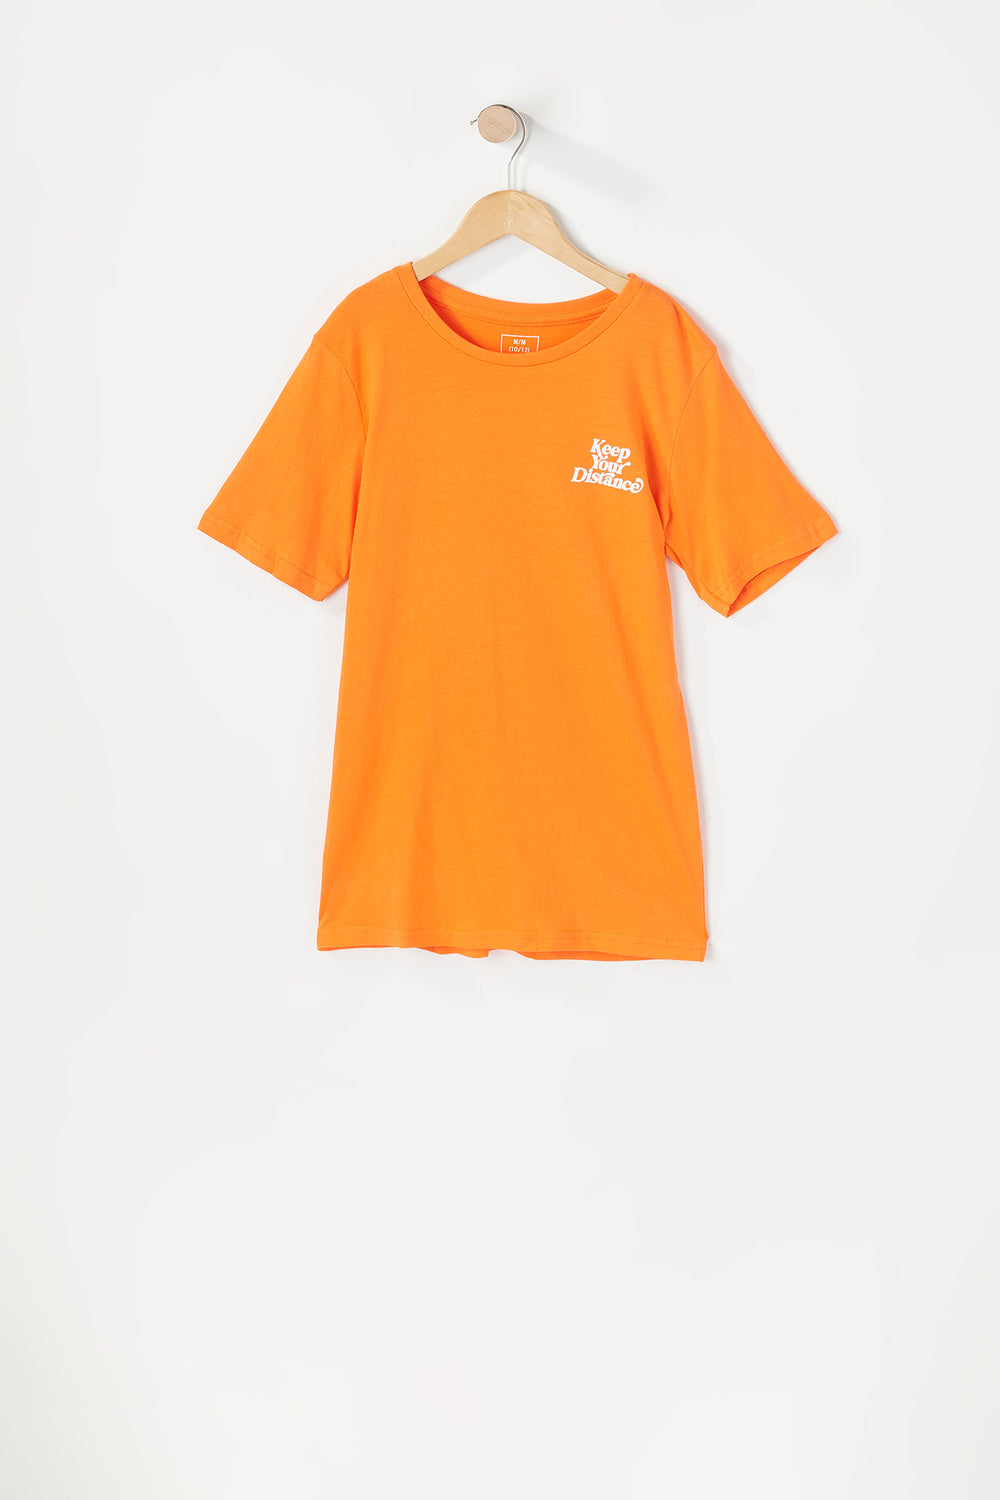 T-Shirt Keep Your Distance Young & Reckless Junior Orange